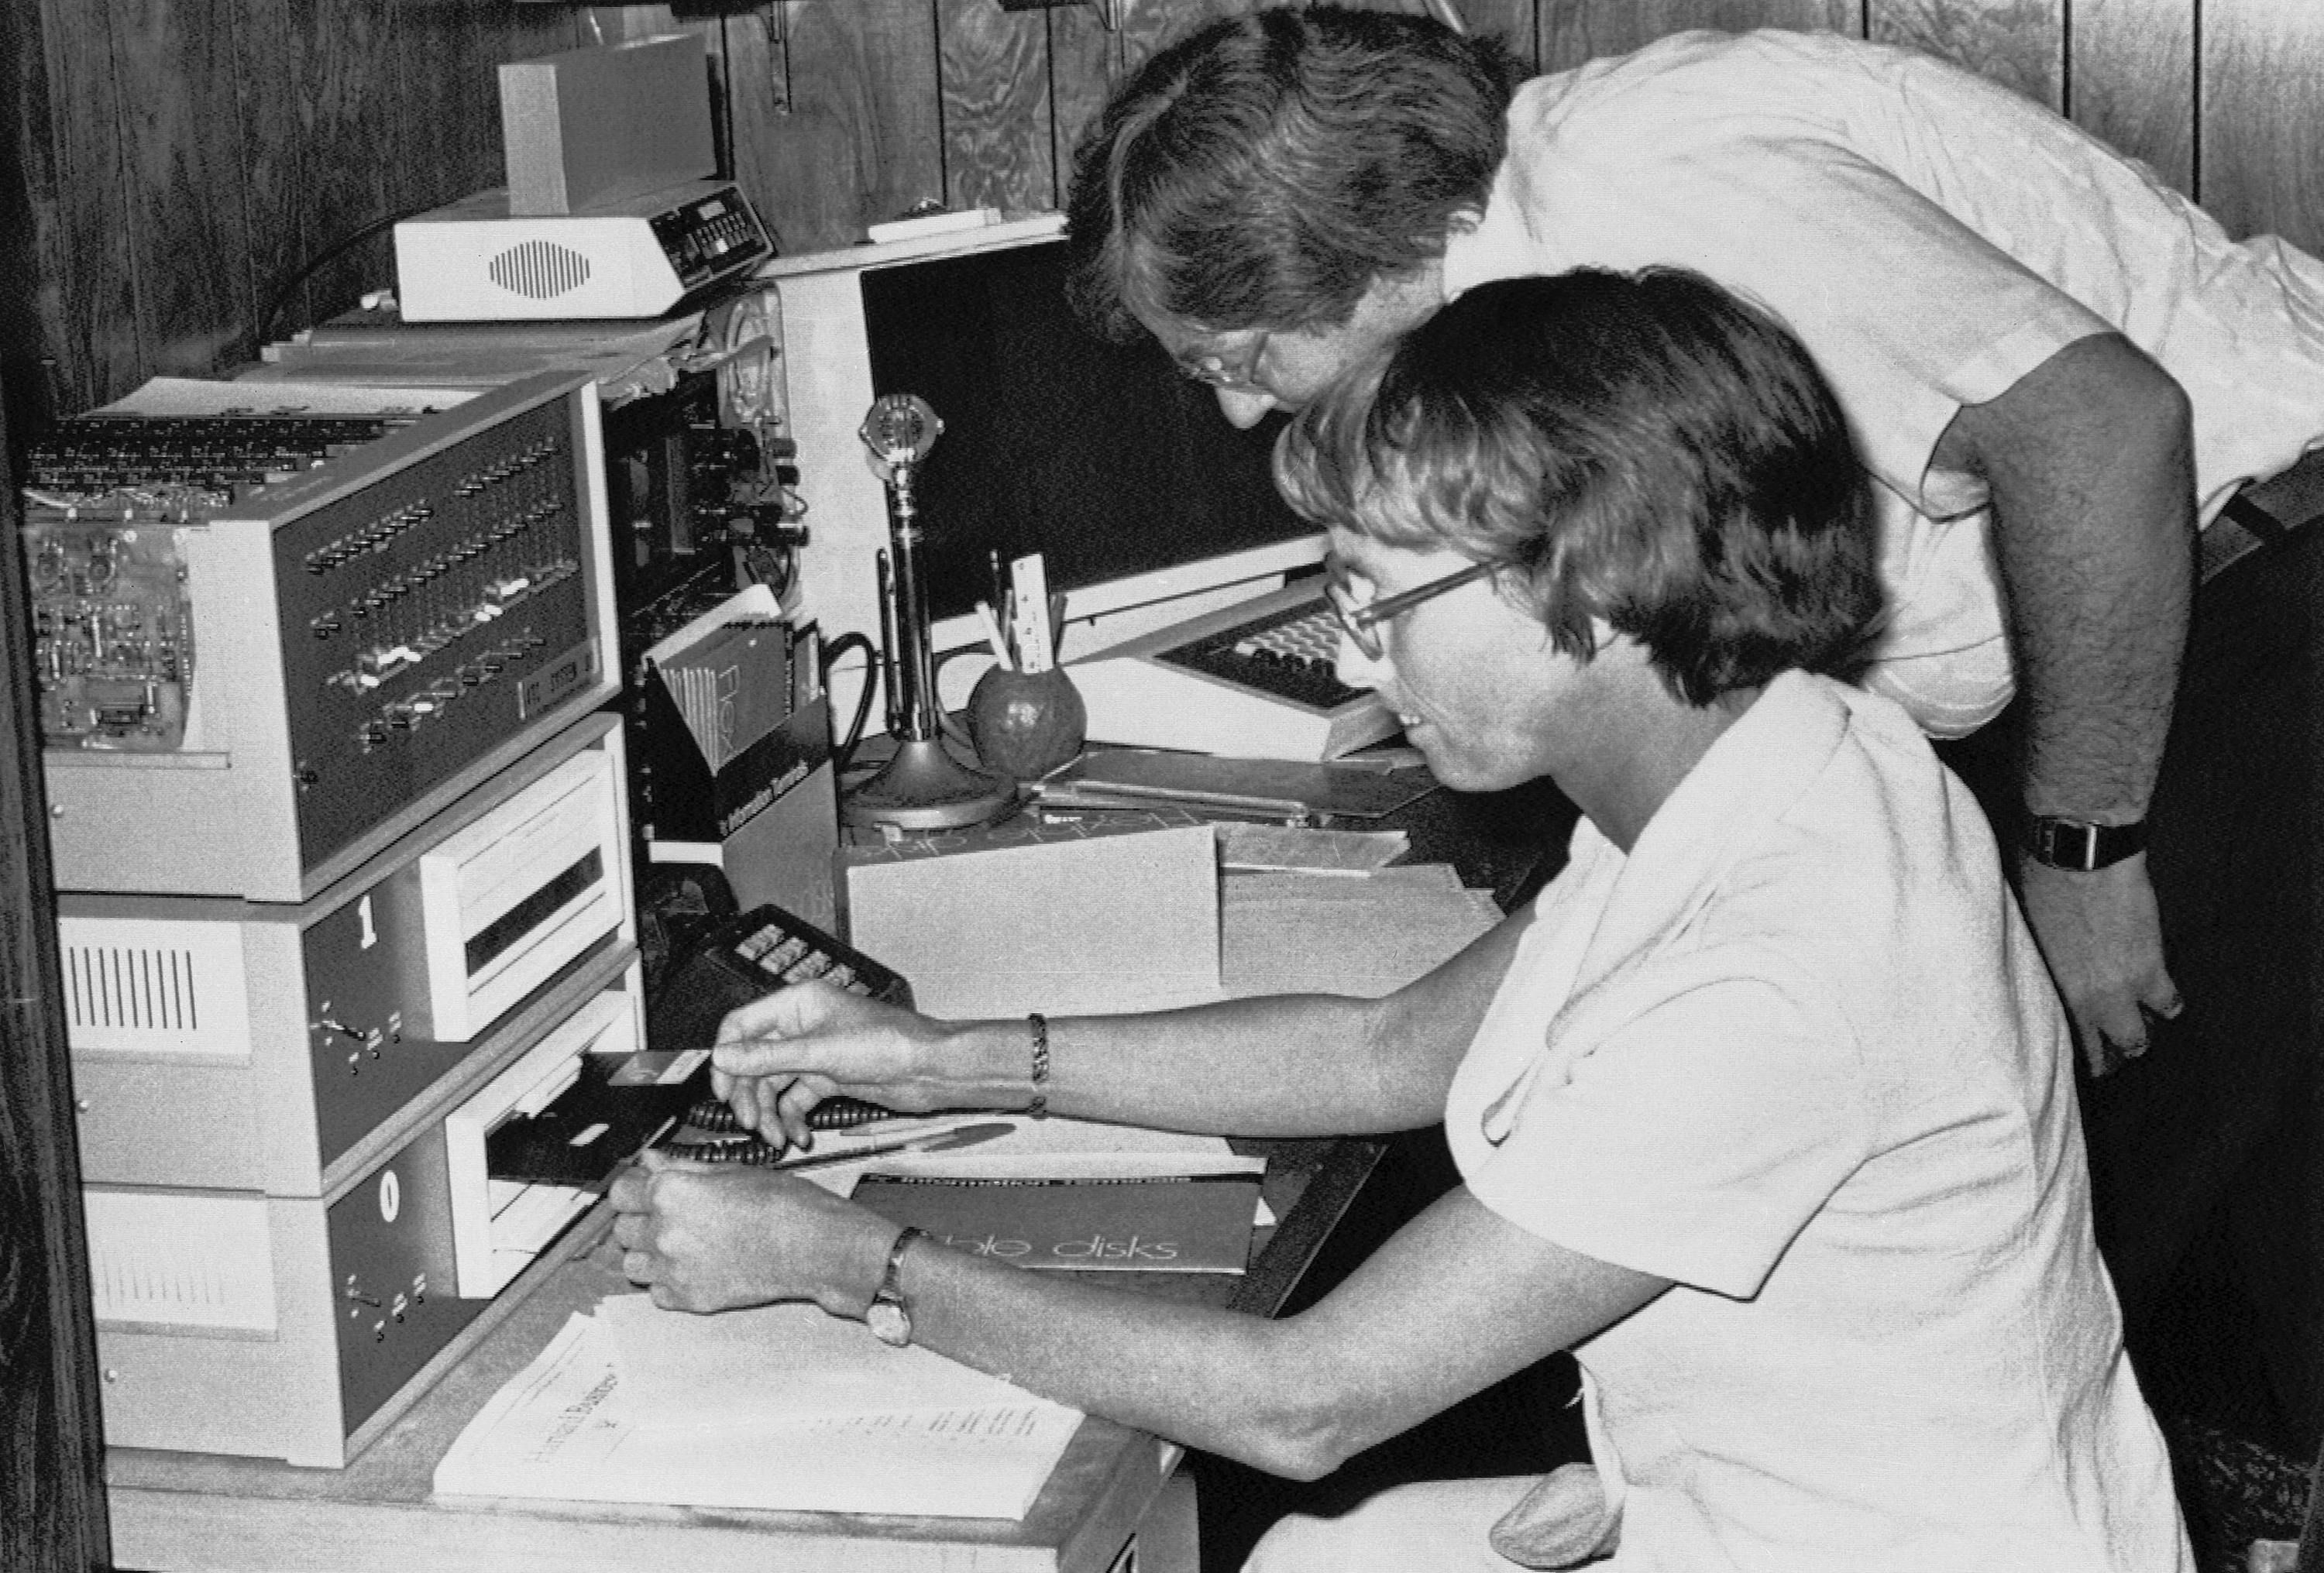 Inez Bullock slips a ''Floppy Disk'' into drive unit while her husband Ralph checks the program for their home computer on August 14, 1977. (AP)